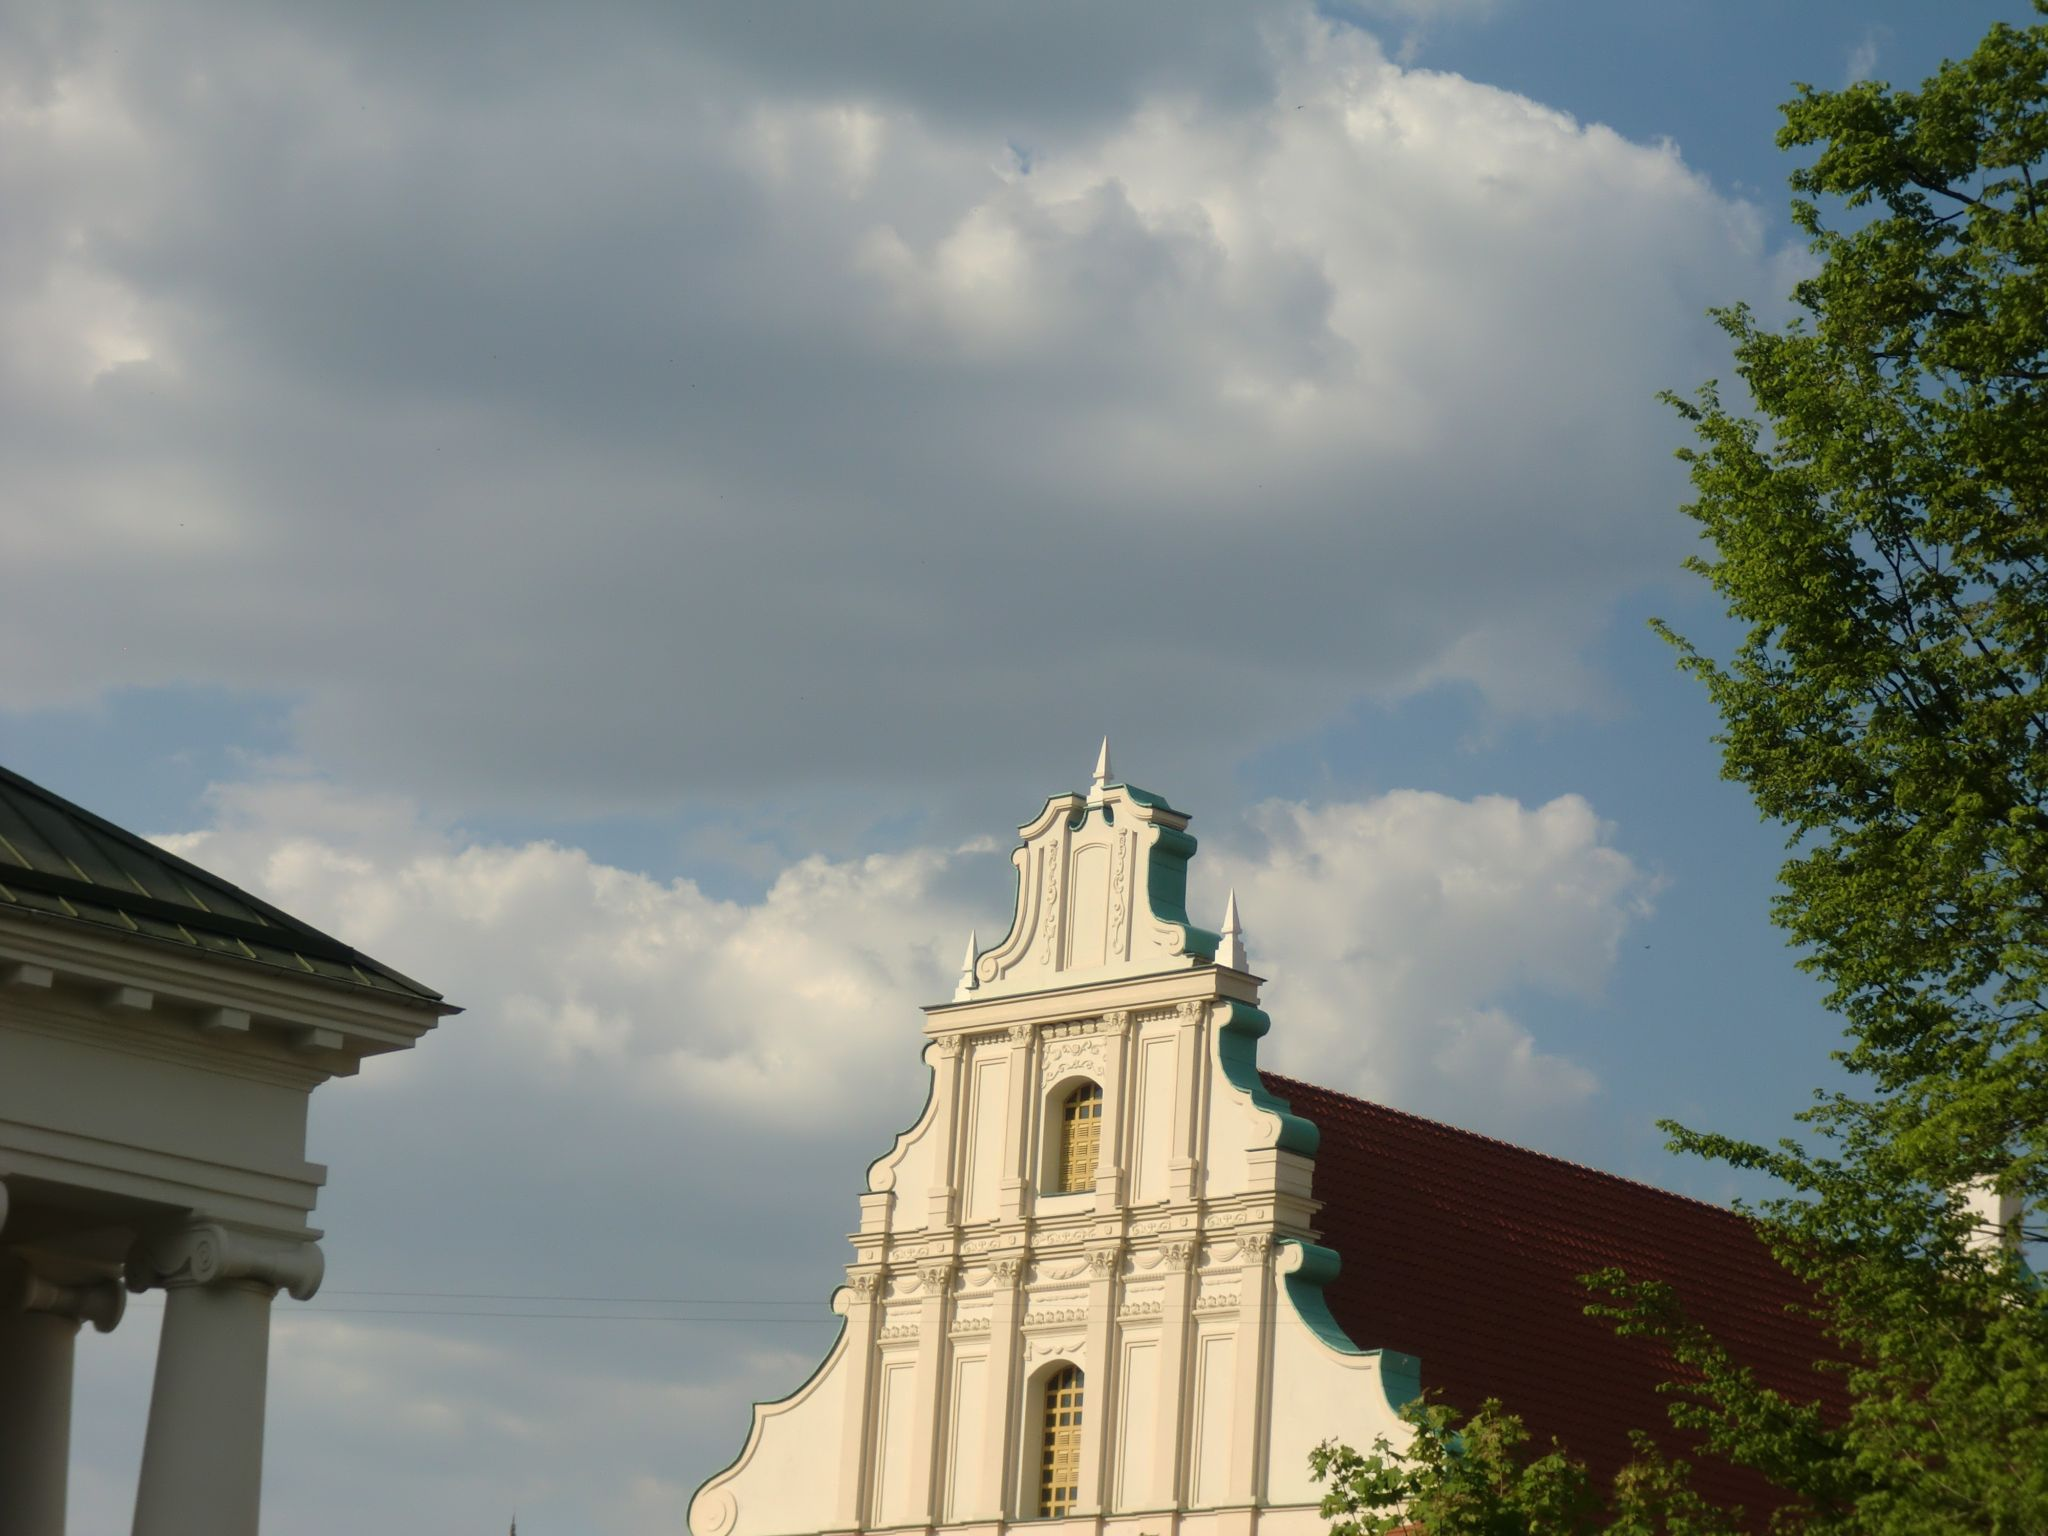 Minsk old town 2 - Minsk, 1 amazing city you have to see